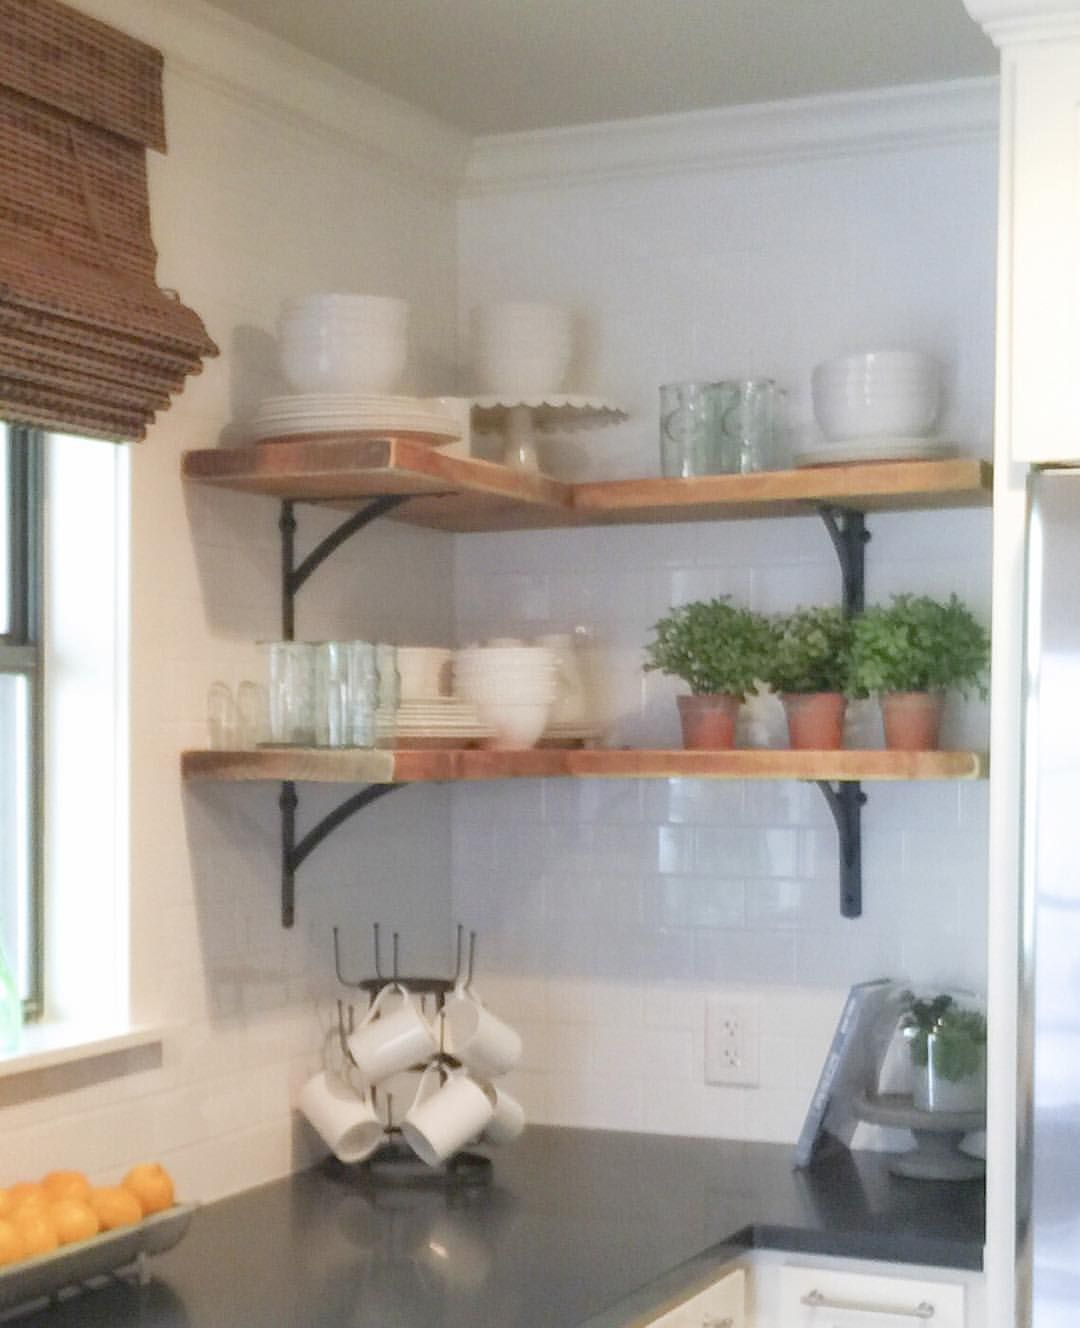 Kitchen Corner Shelf Paints Shanty Sisters On Instagram Simple Shelves We Bought 4 Inexpensive Metal Brackets And One 2x12 Board From Home Depot